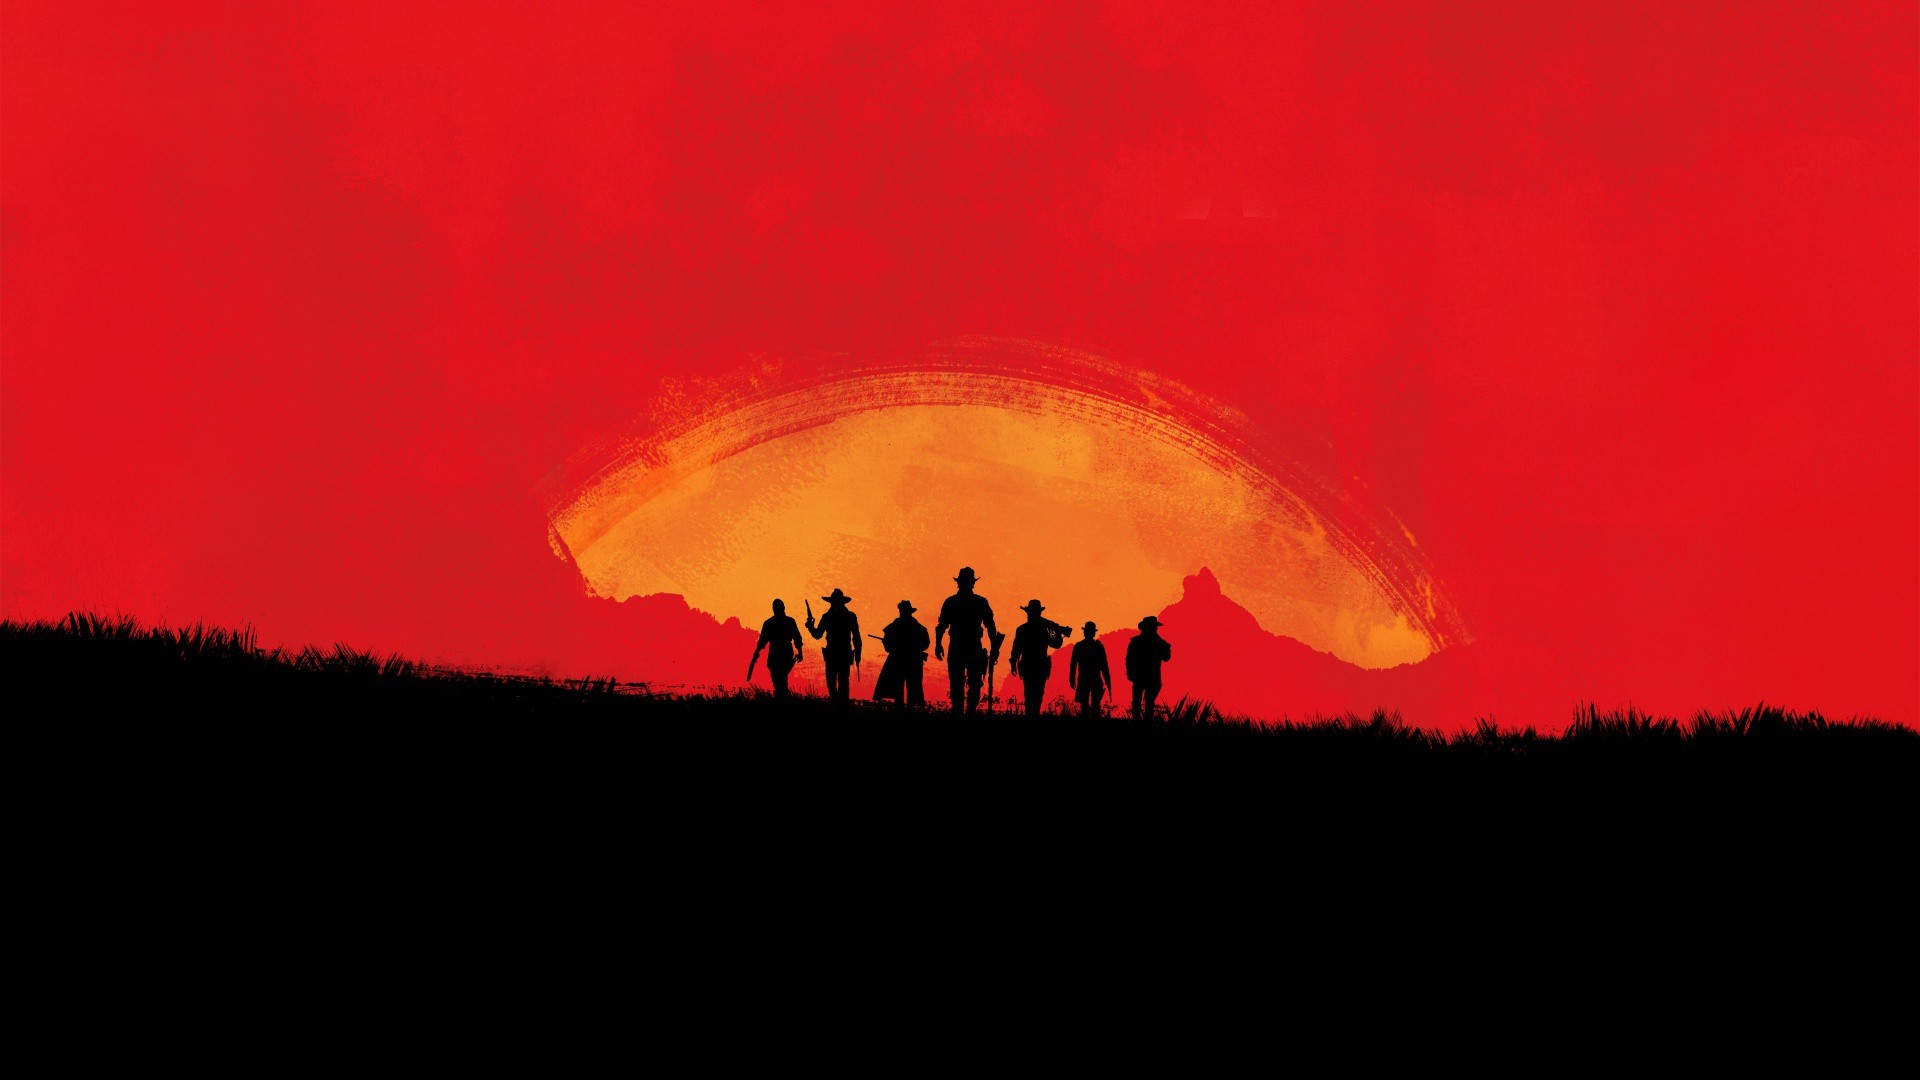 Res: 1920x1080, 1080p[] Red Dead Redemption 2 Wallpaper ...